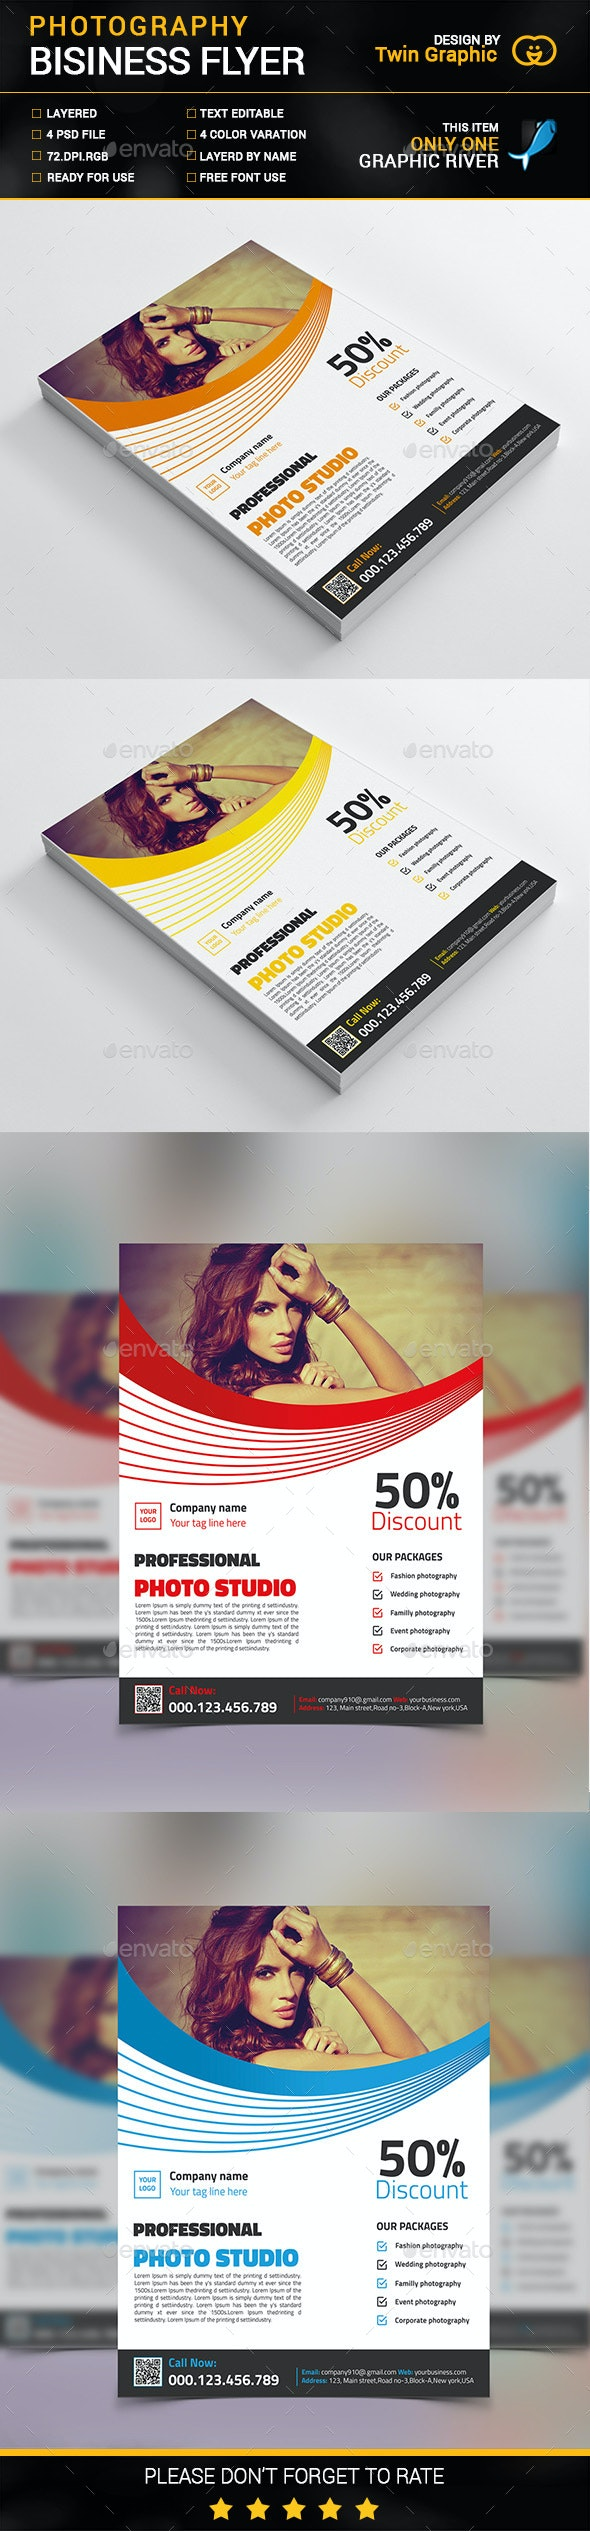 Photography Business Flyer Design - Corporate Flyers